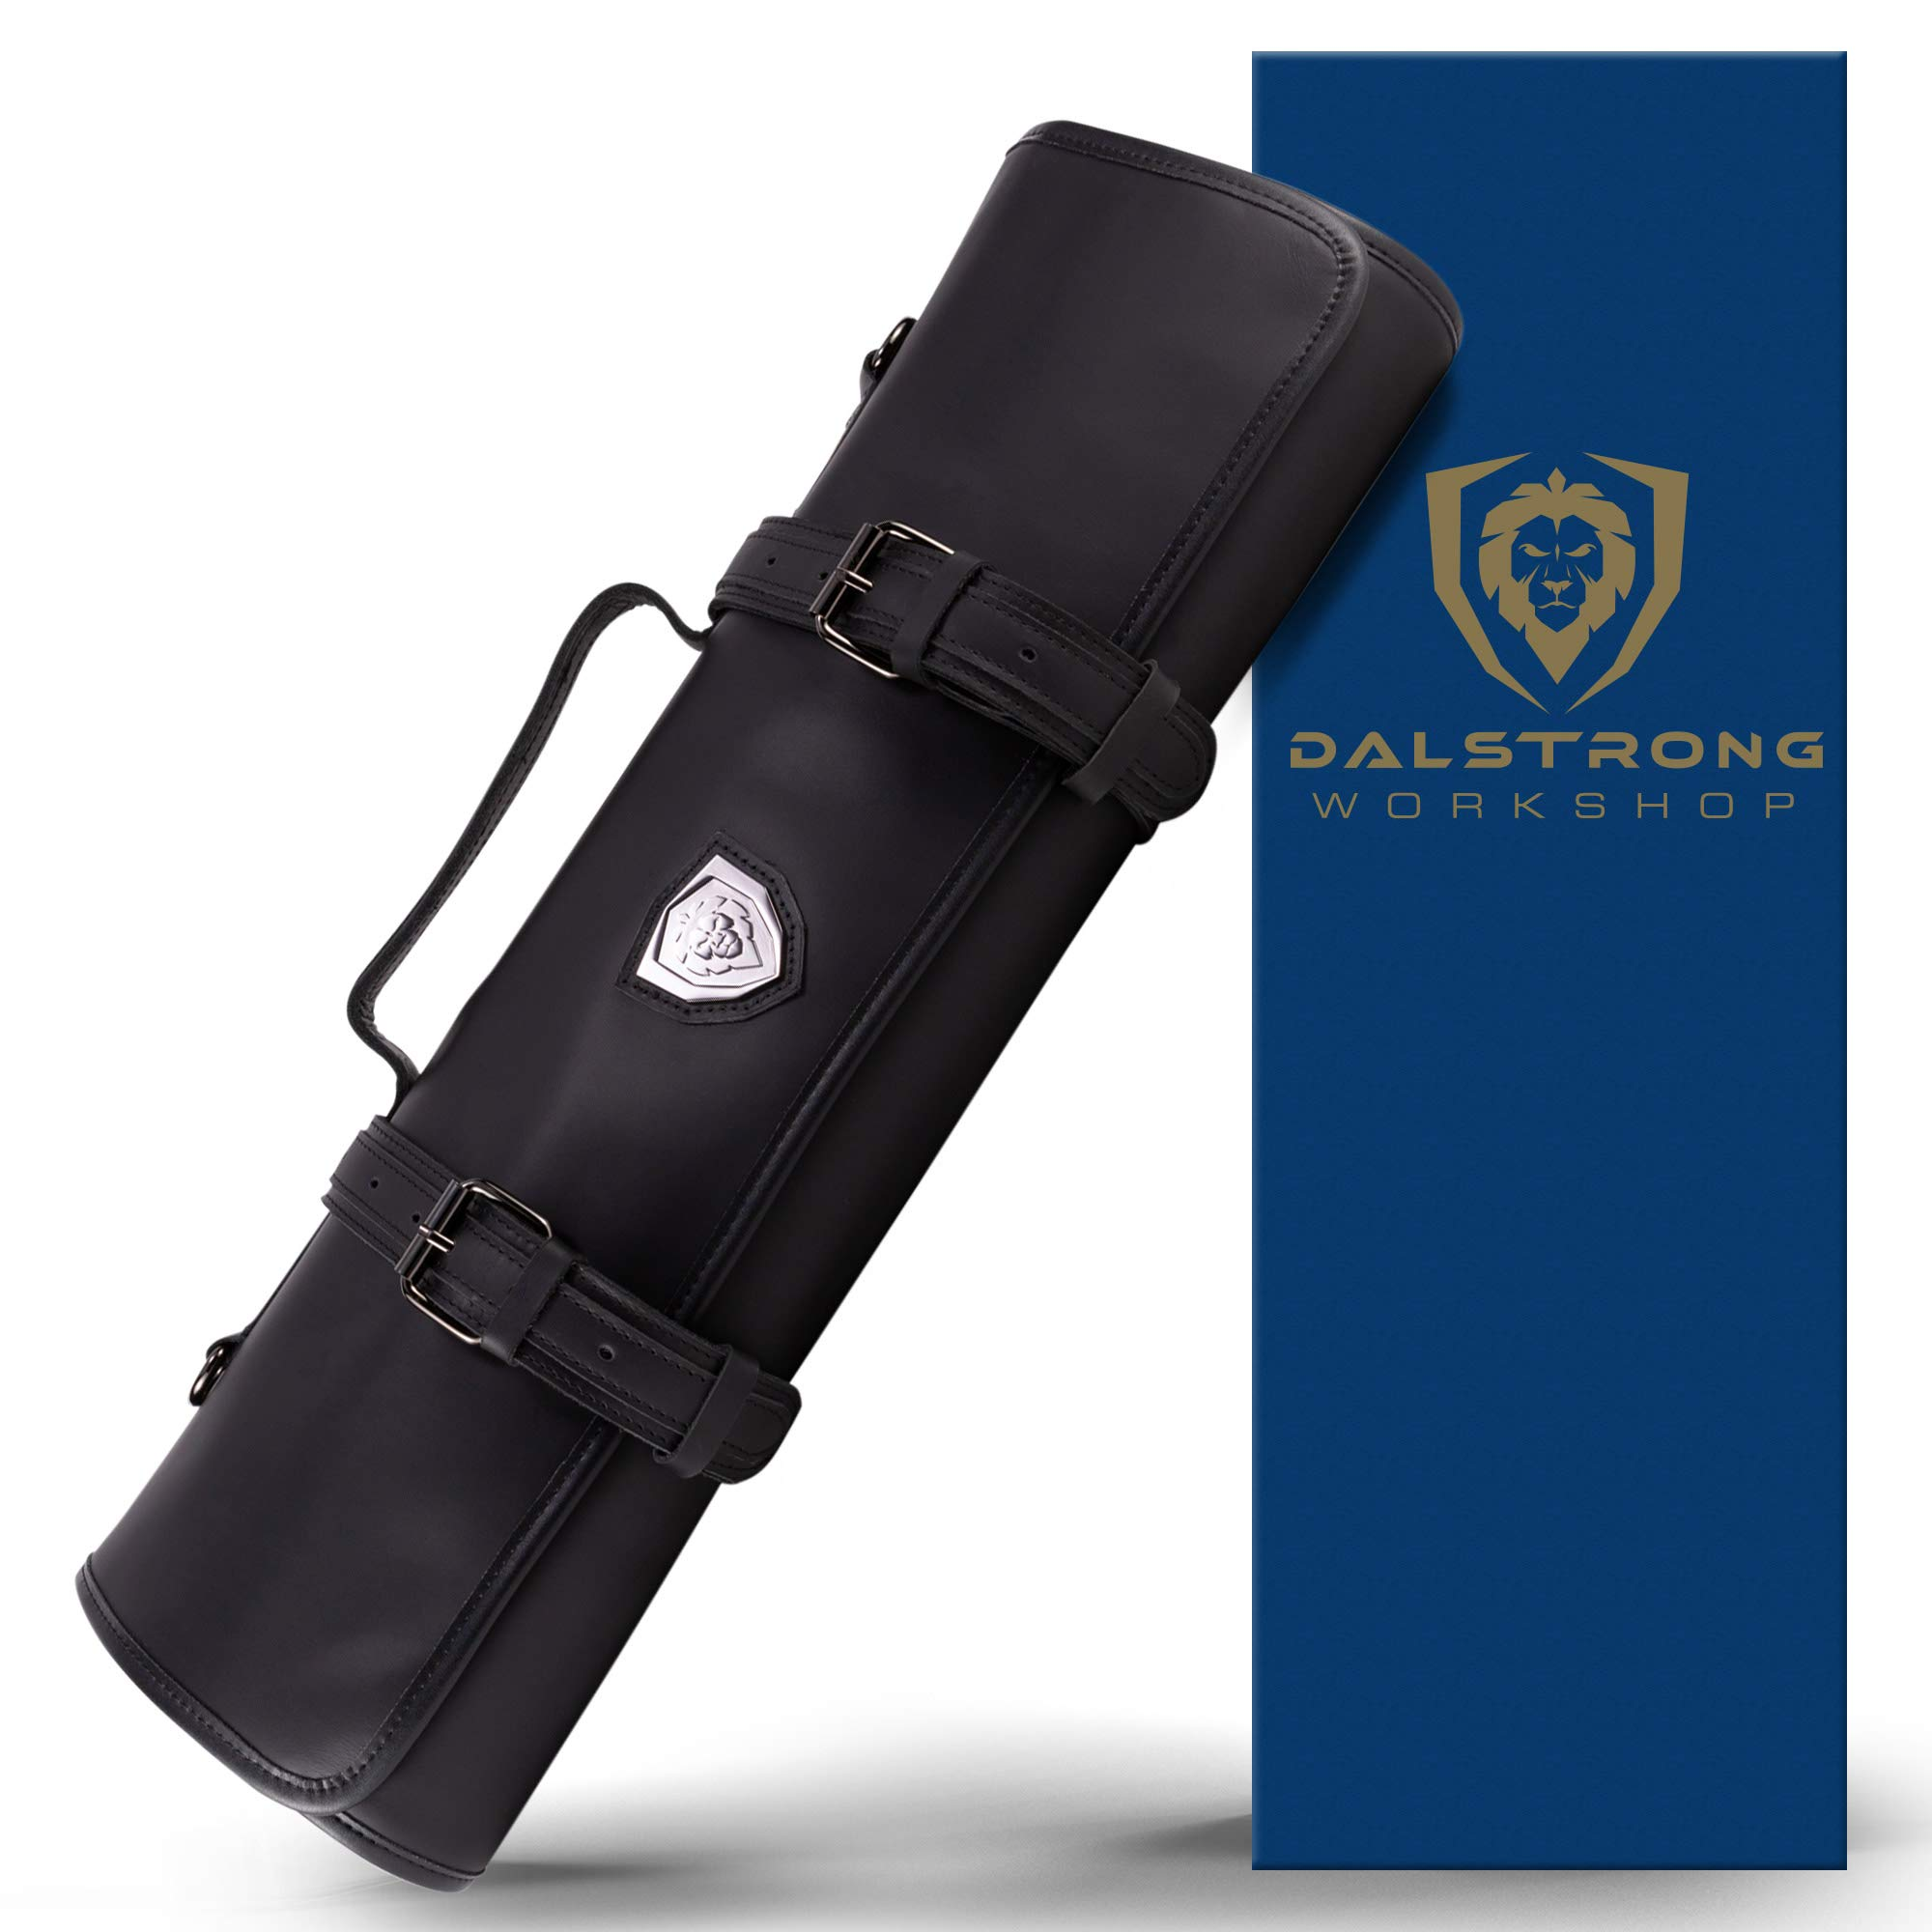 Dalstrong - Vagabond Professional Knife Roll Full & Top Grain Brazilian Leather Roll Bag - Midnight Black - 16 Slots - Interior and Rear Zippered Pockets - Blade Travel Storage/Case